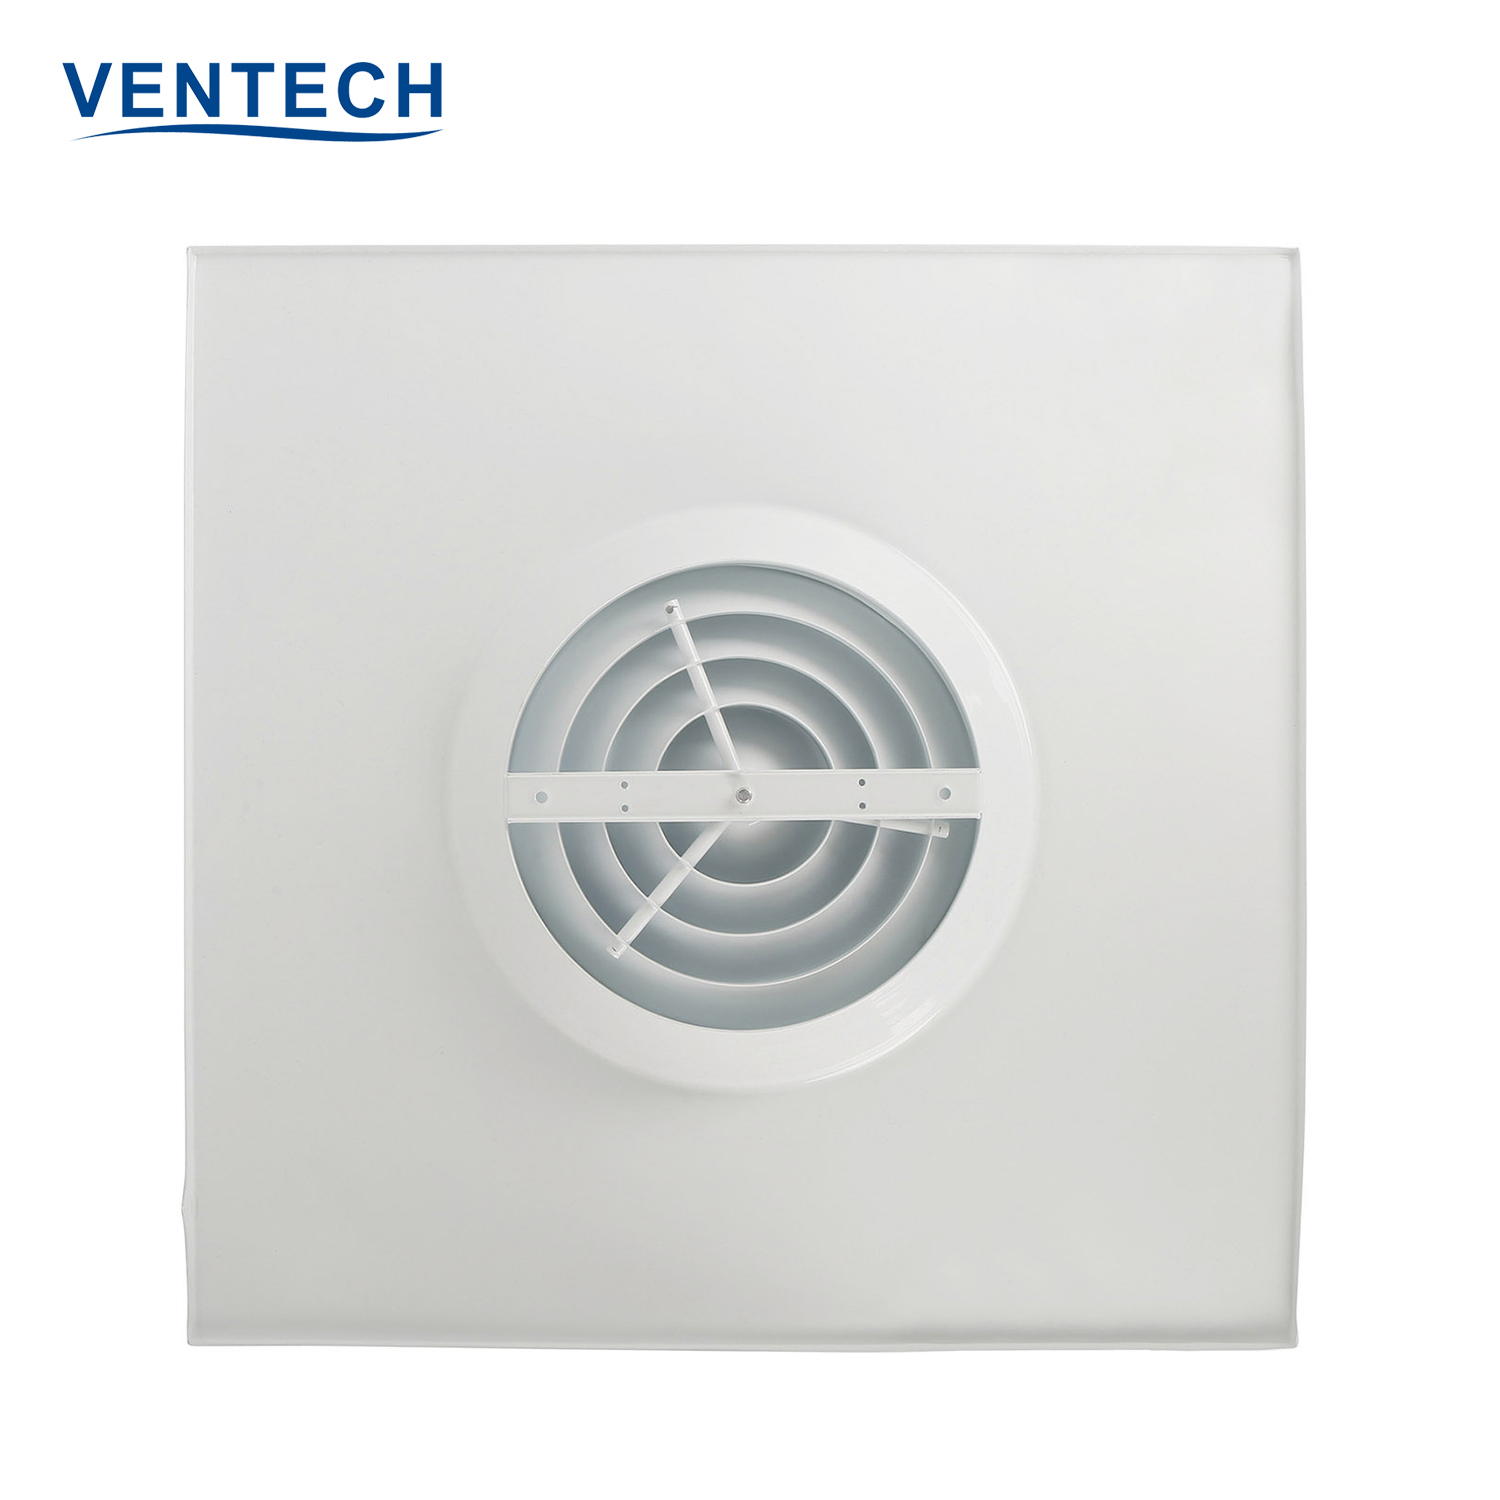 Ventech return air diffuser ceiling inquire now for large public areas-1